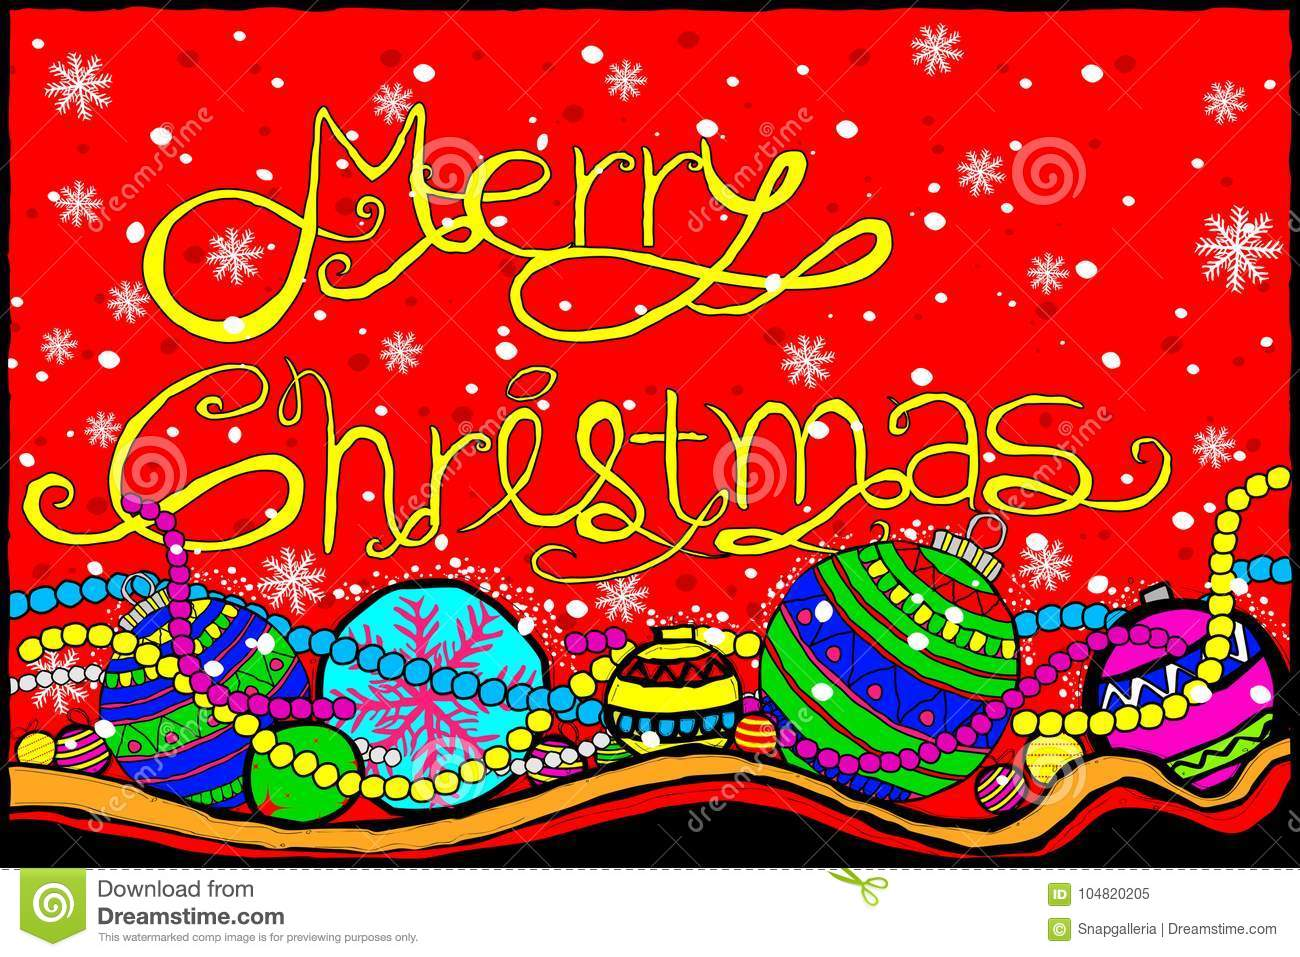 Merry Christmas And Happy New Year Holiday Greetings Background